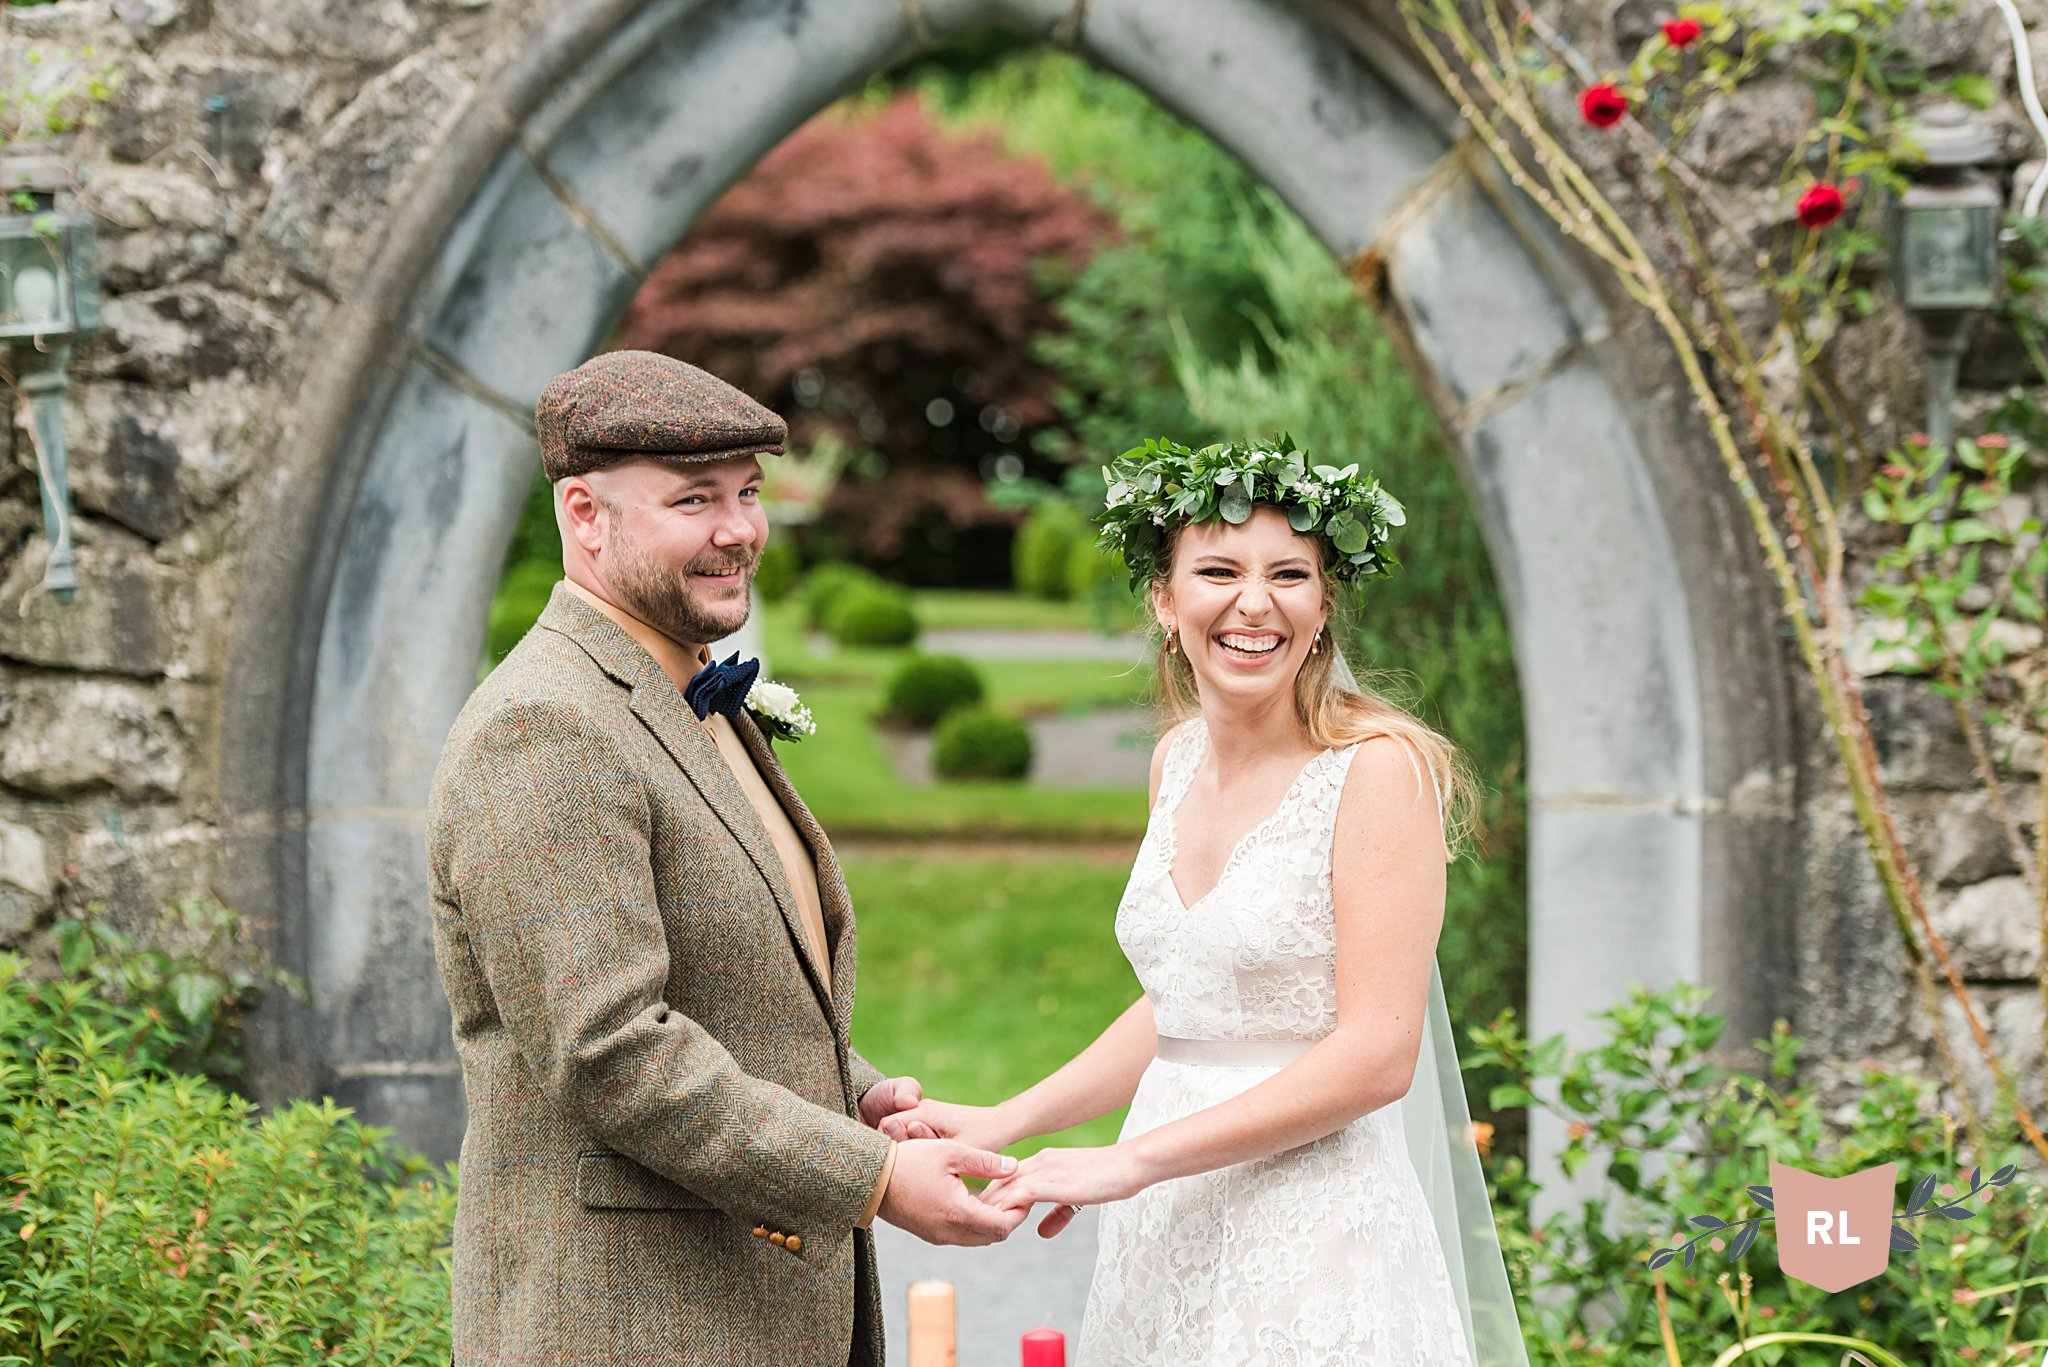 RossCastleWedding_Ireland_1020.jpg